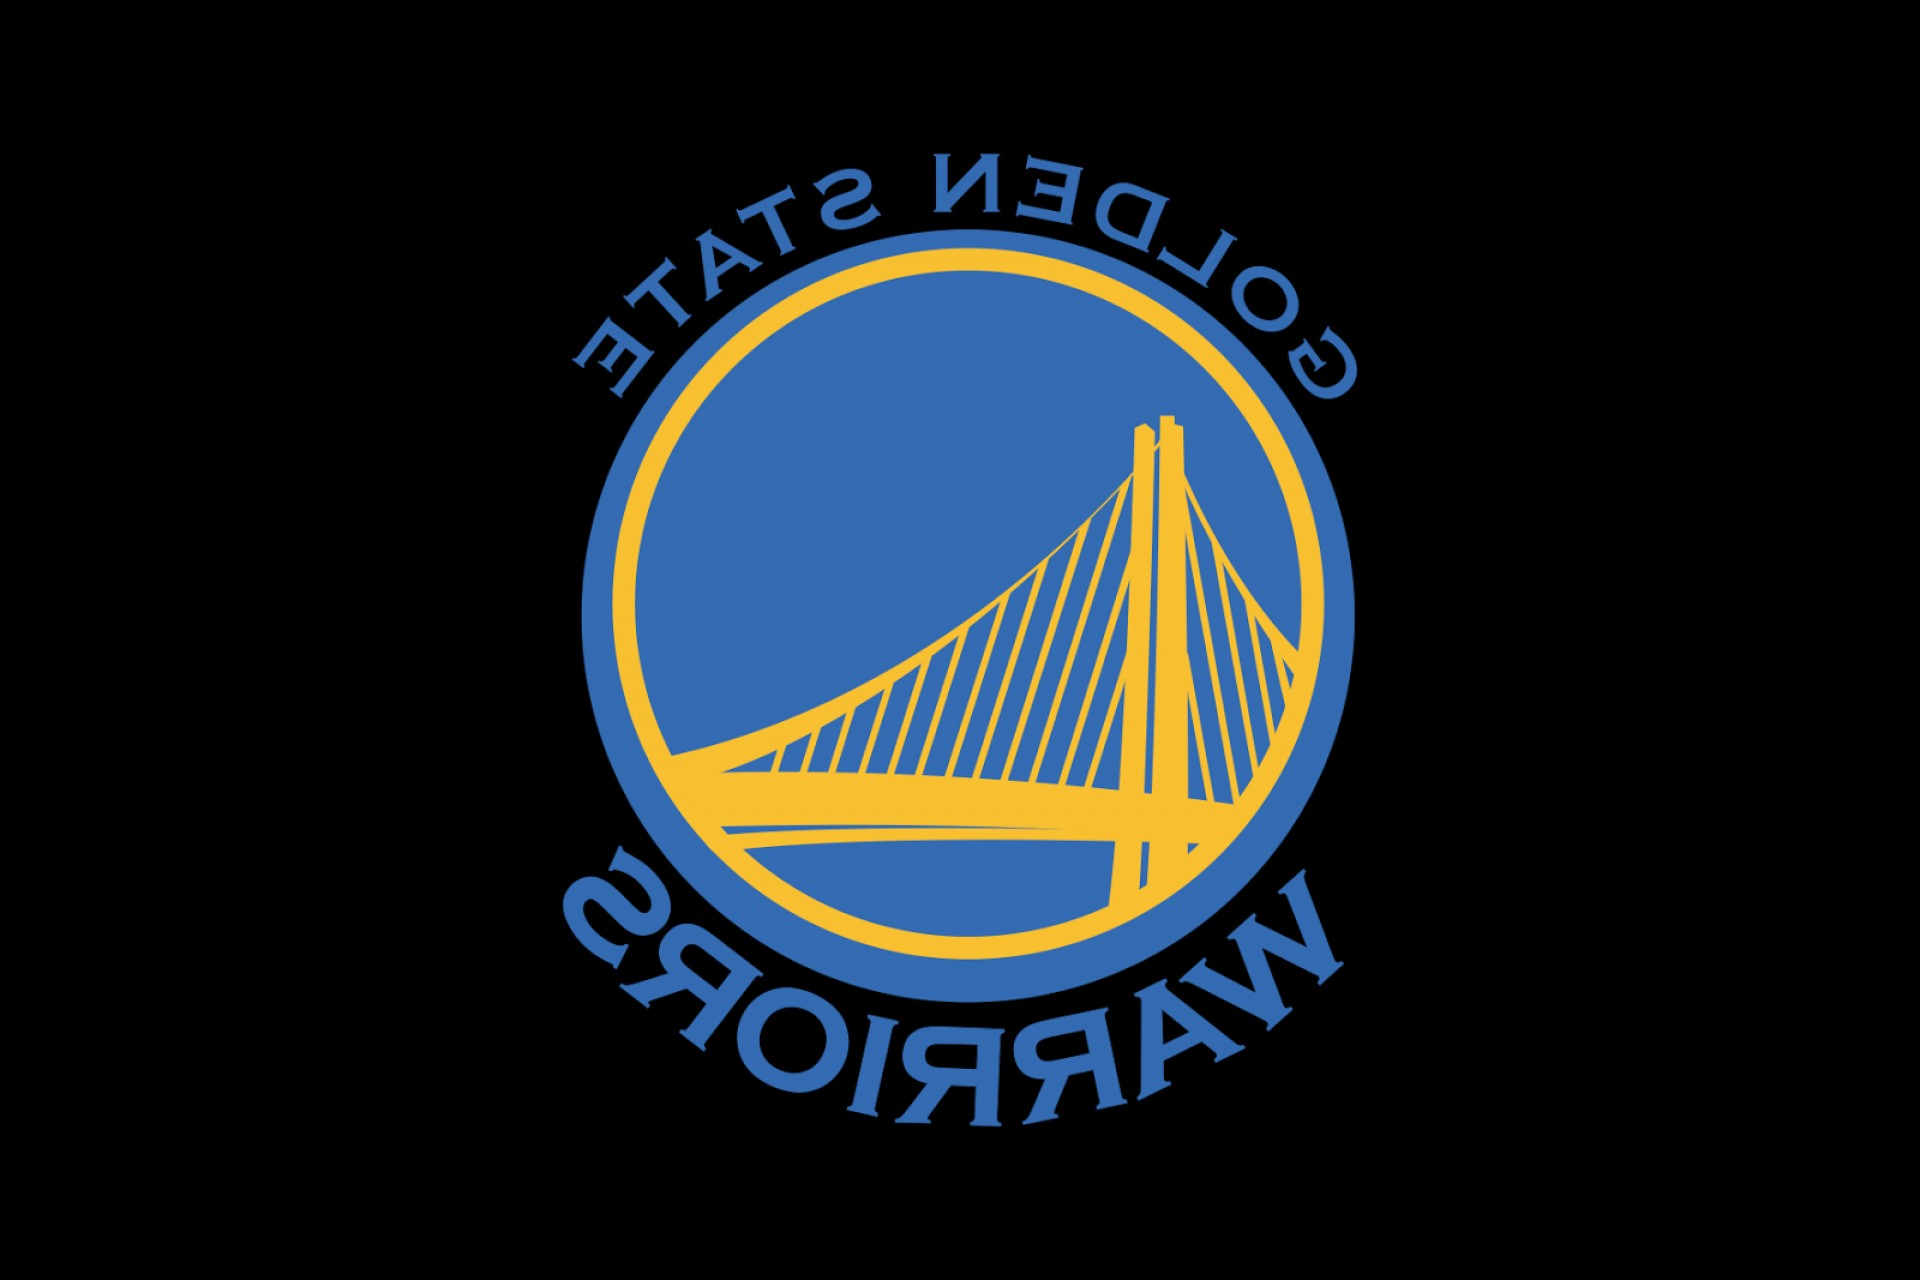 Golden State Logo Vector: Warriors Make Nba History As First Team To Start Season